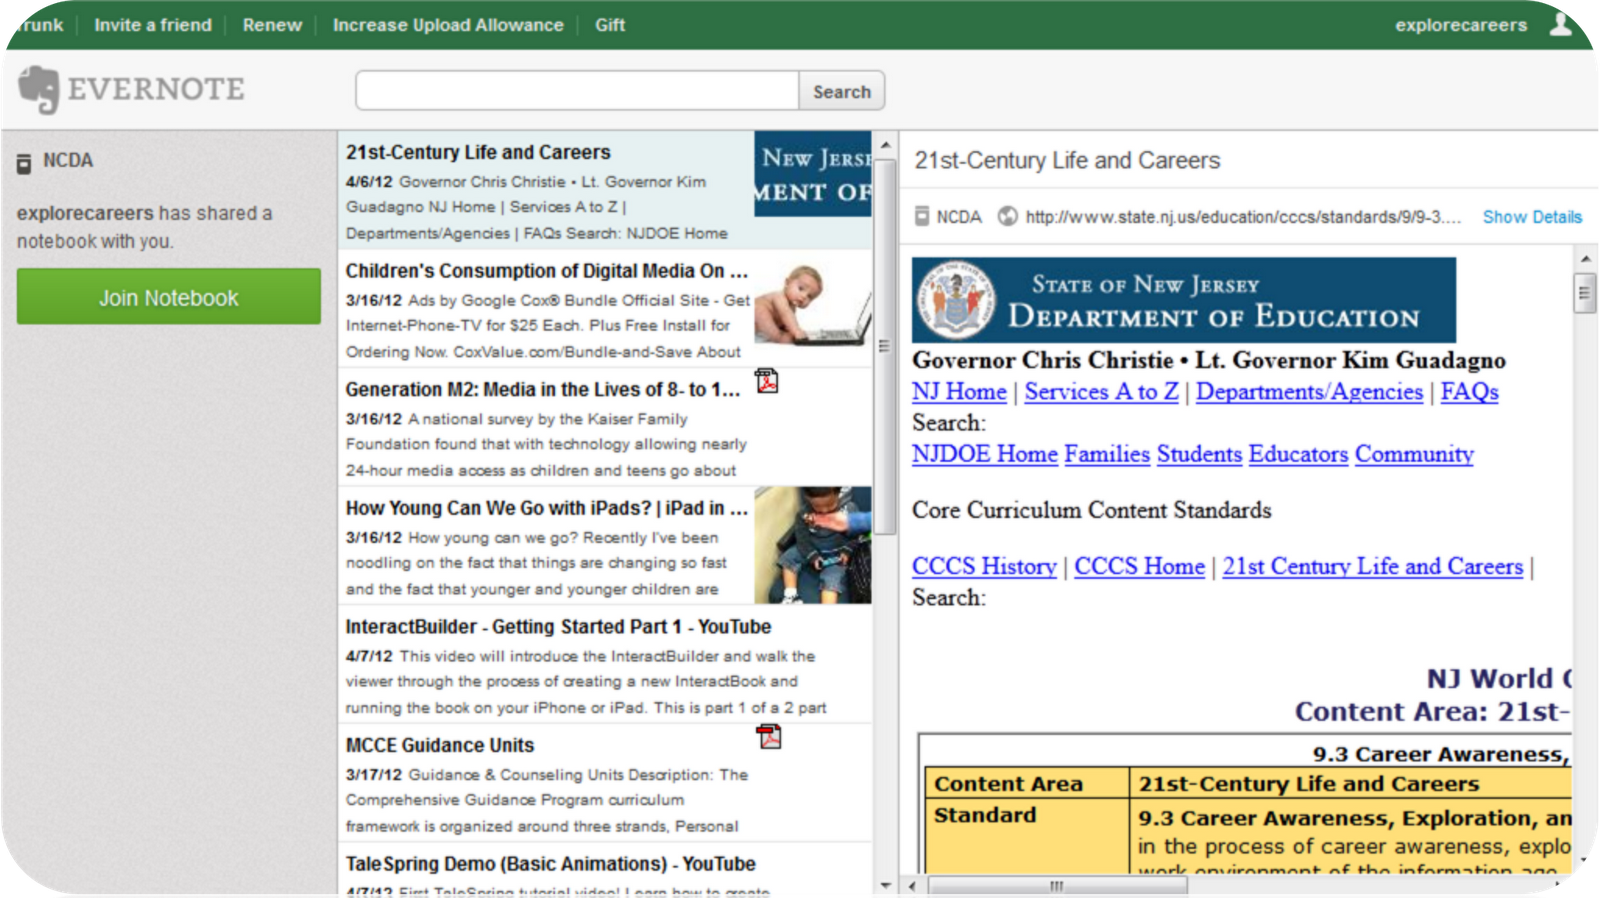 career and social media blog 2012 evernote is a suite of software and services designed for note taking and archiving